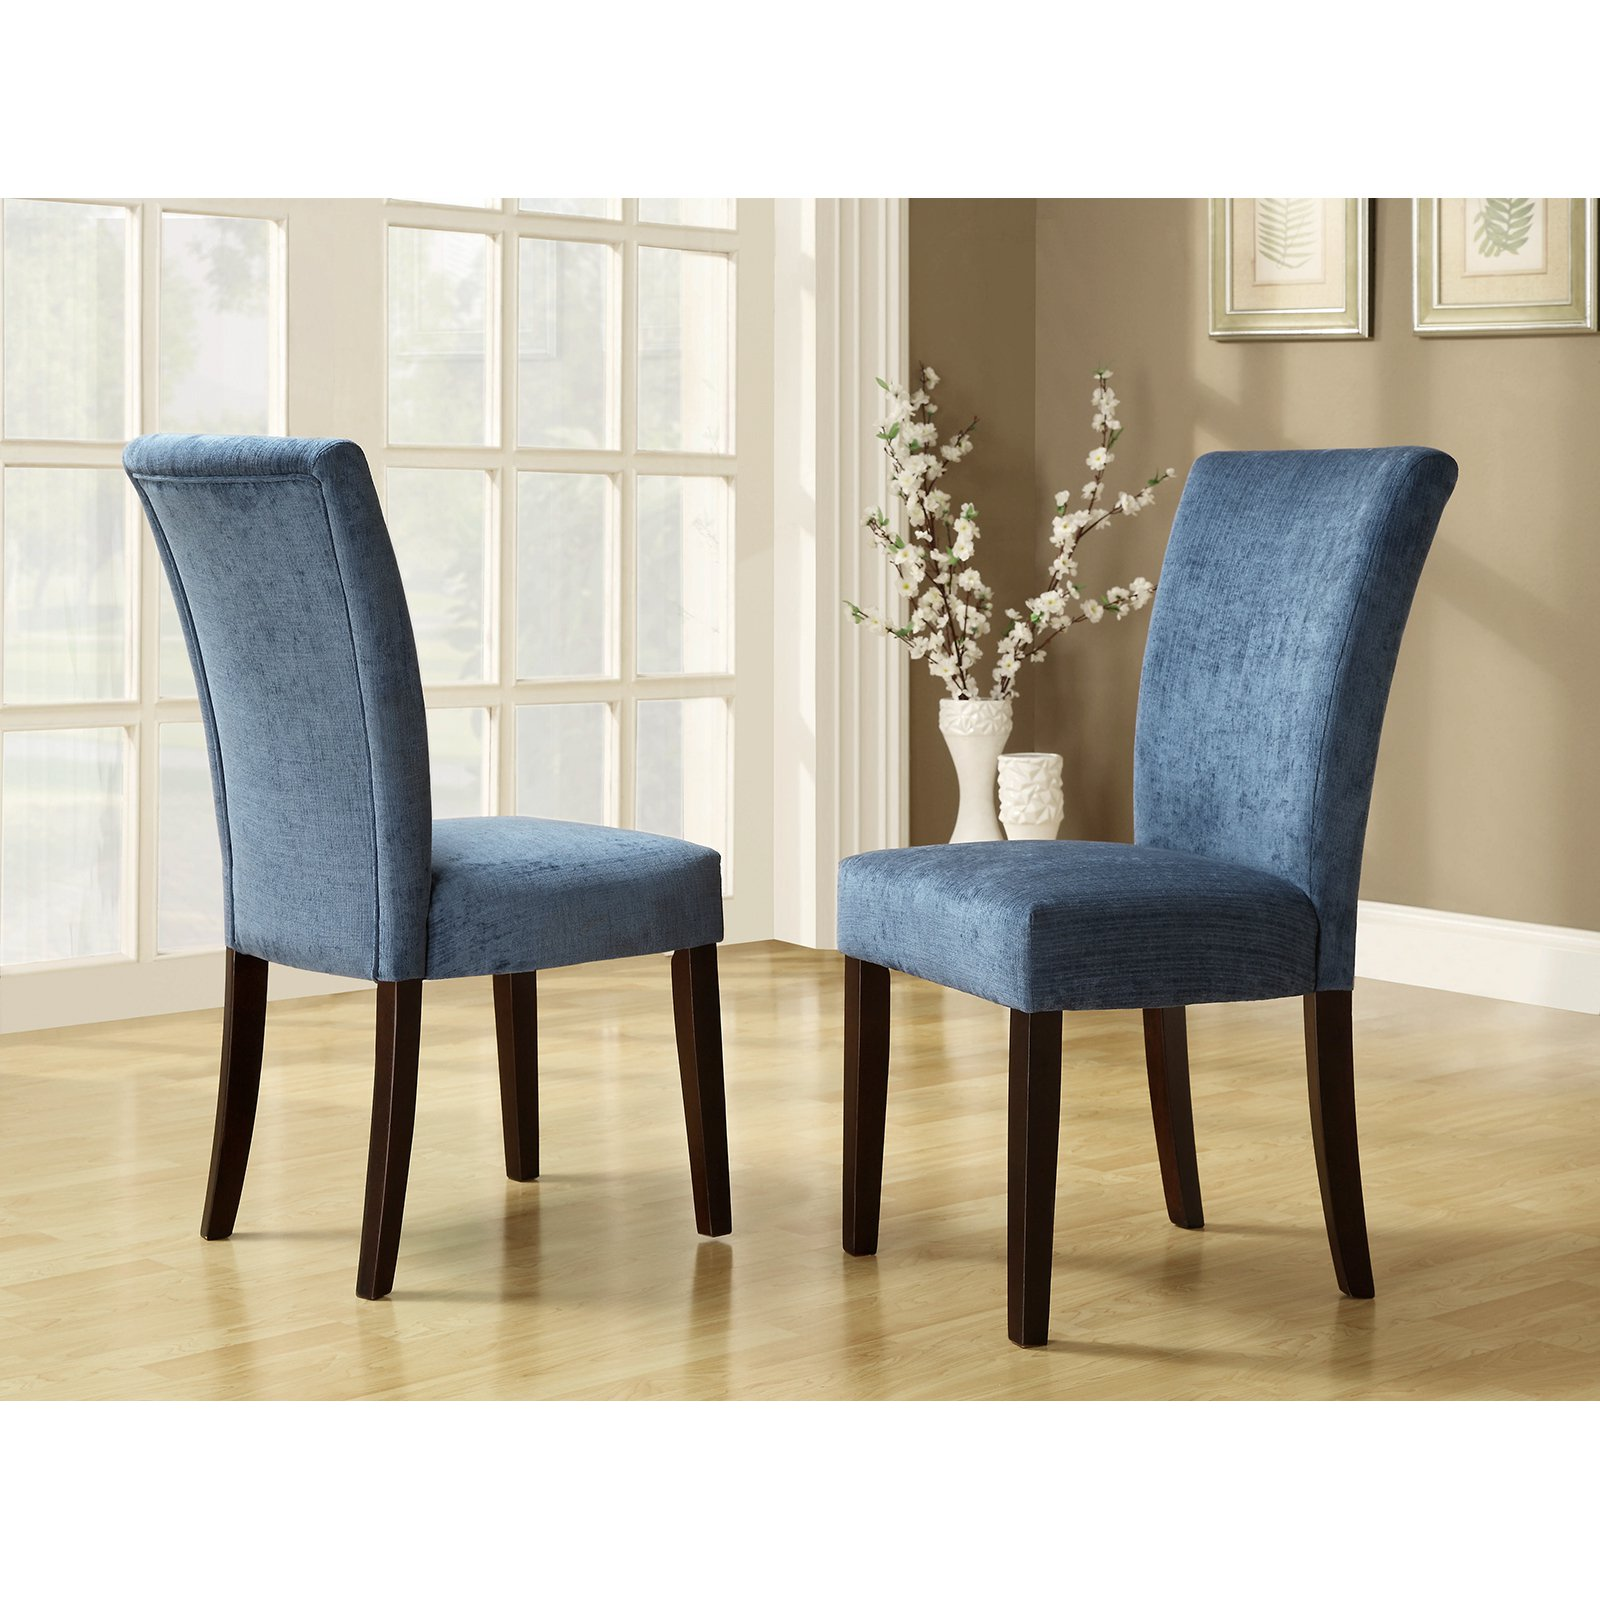 Homelegance Royal Blue Chenille Parson Chairs Espresso Set Of 2